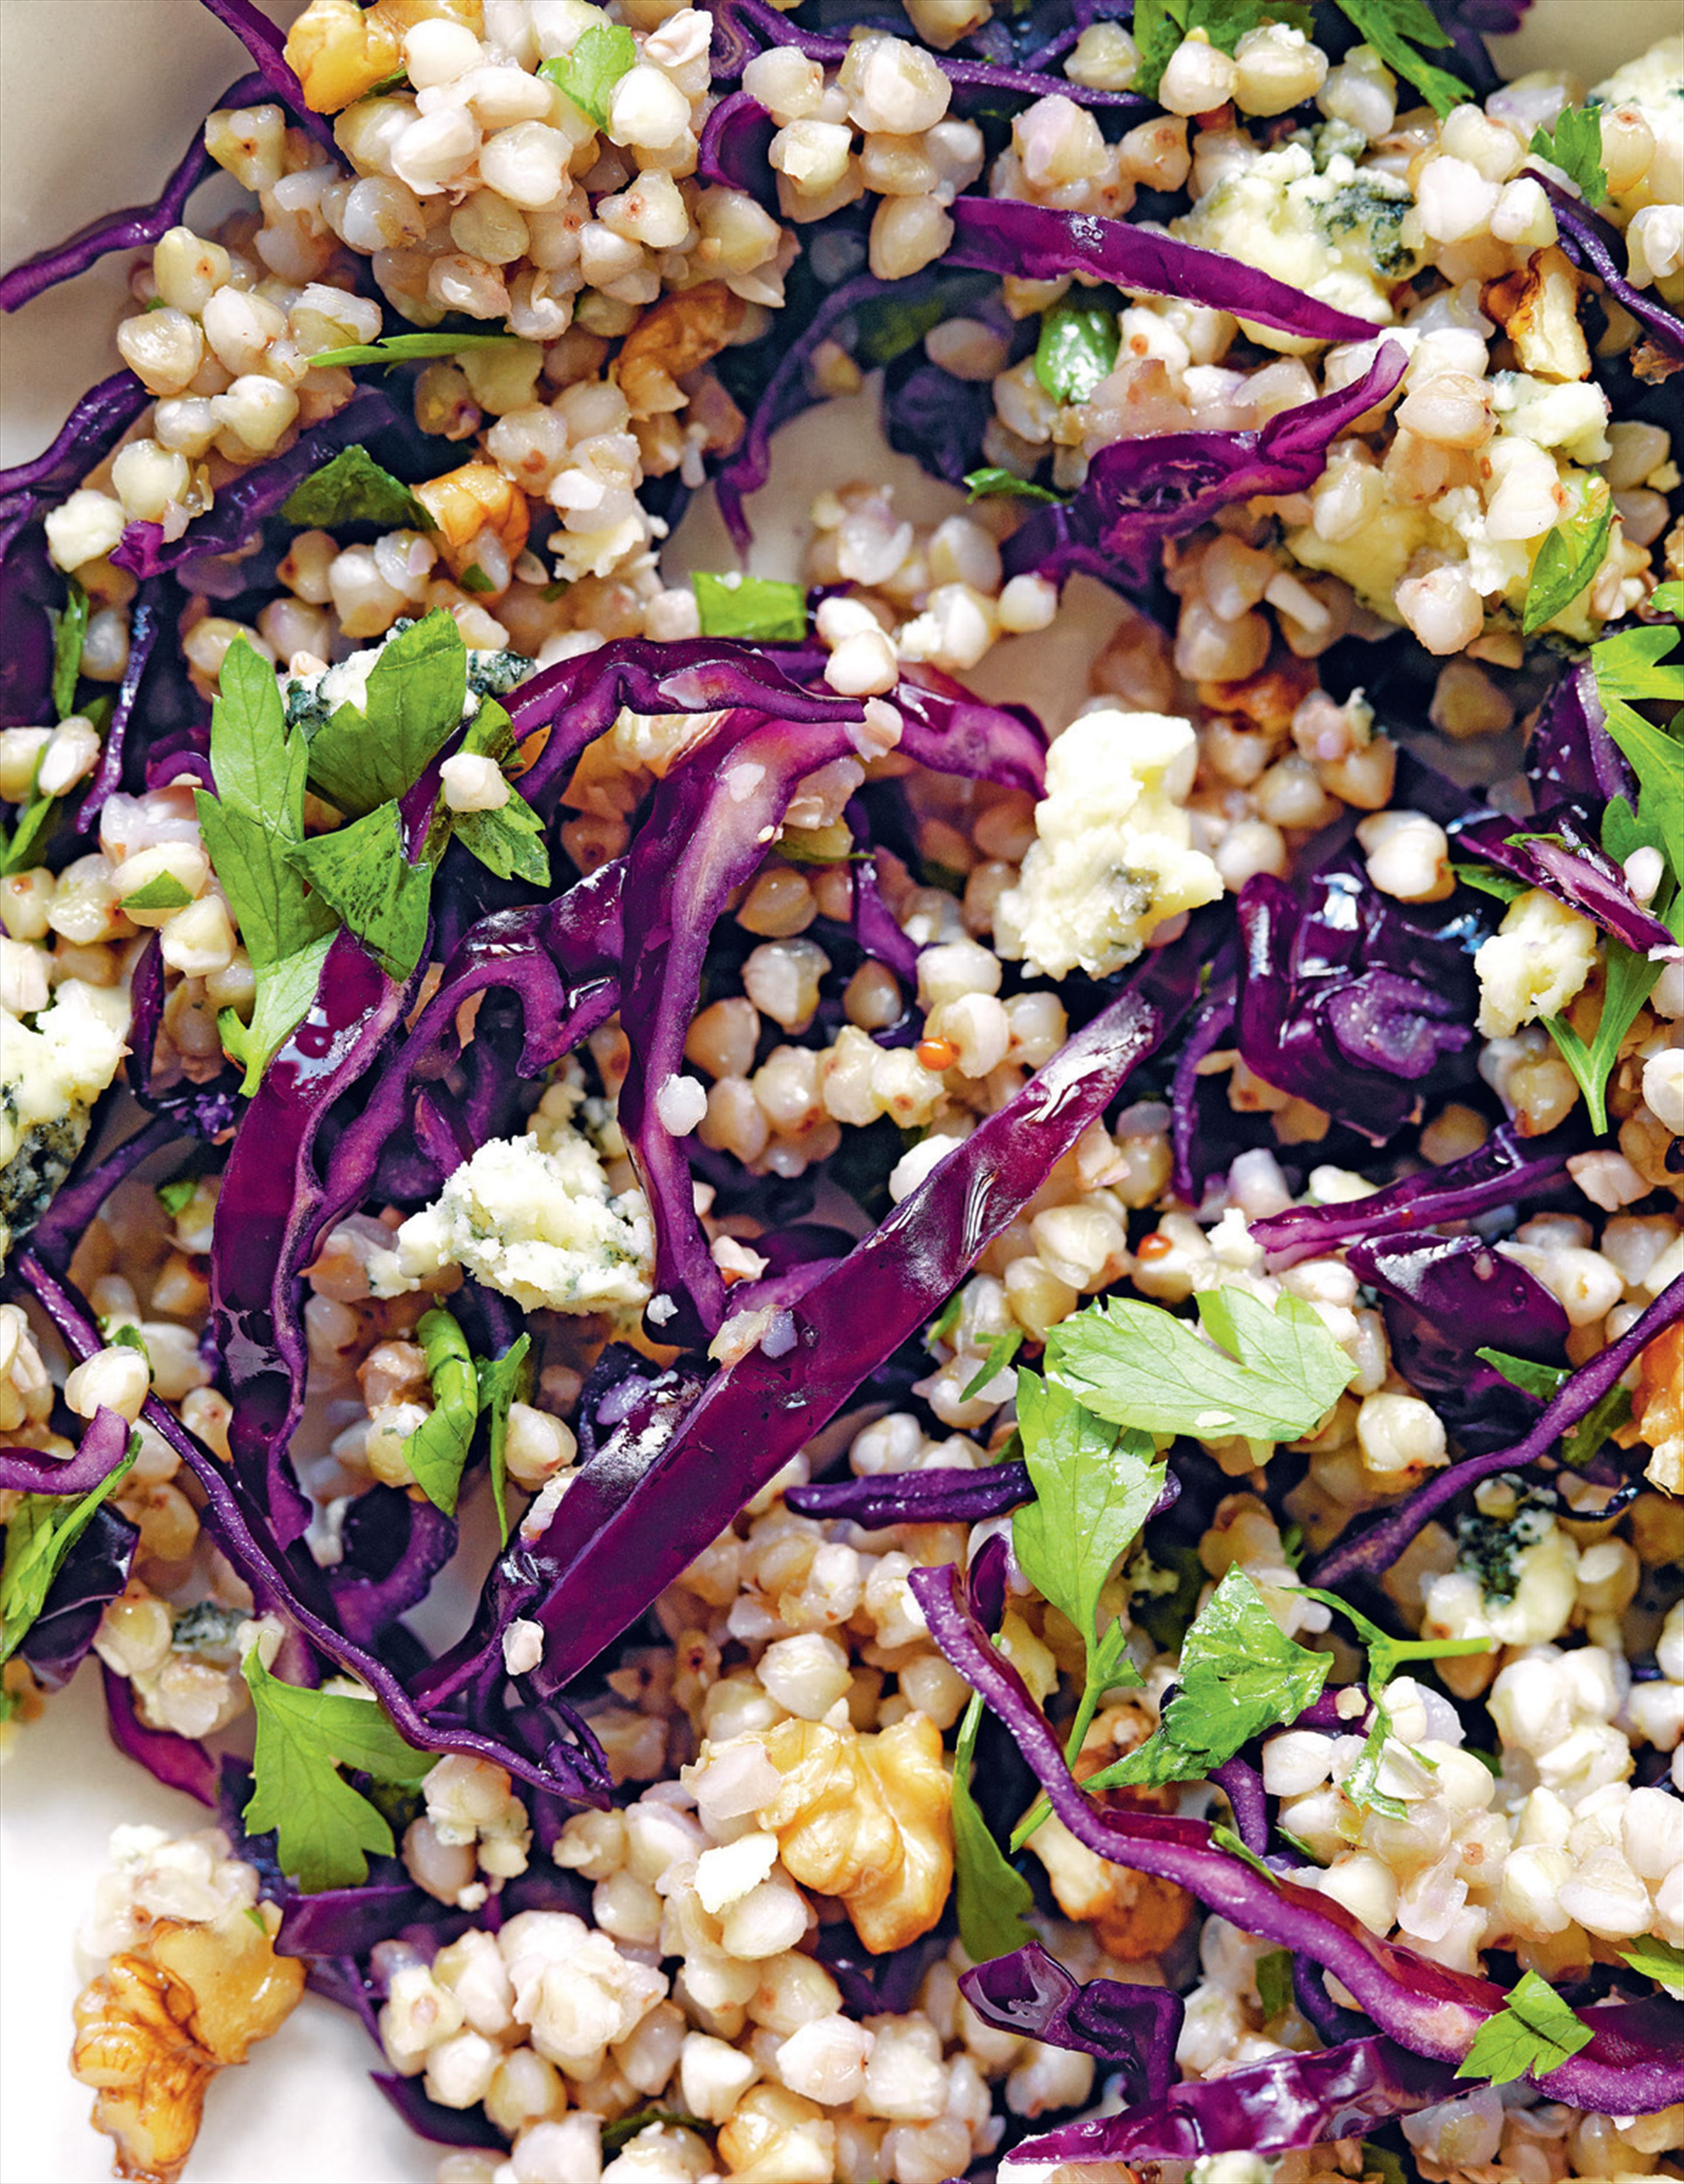 Buckwheat & red cabbage salad with sour cherries and blue cheese